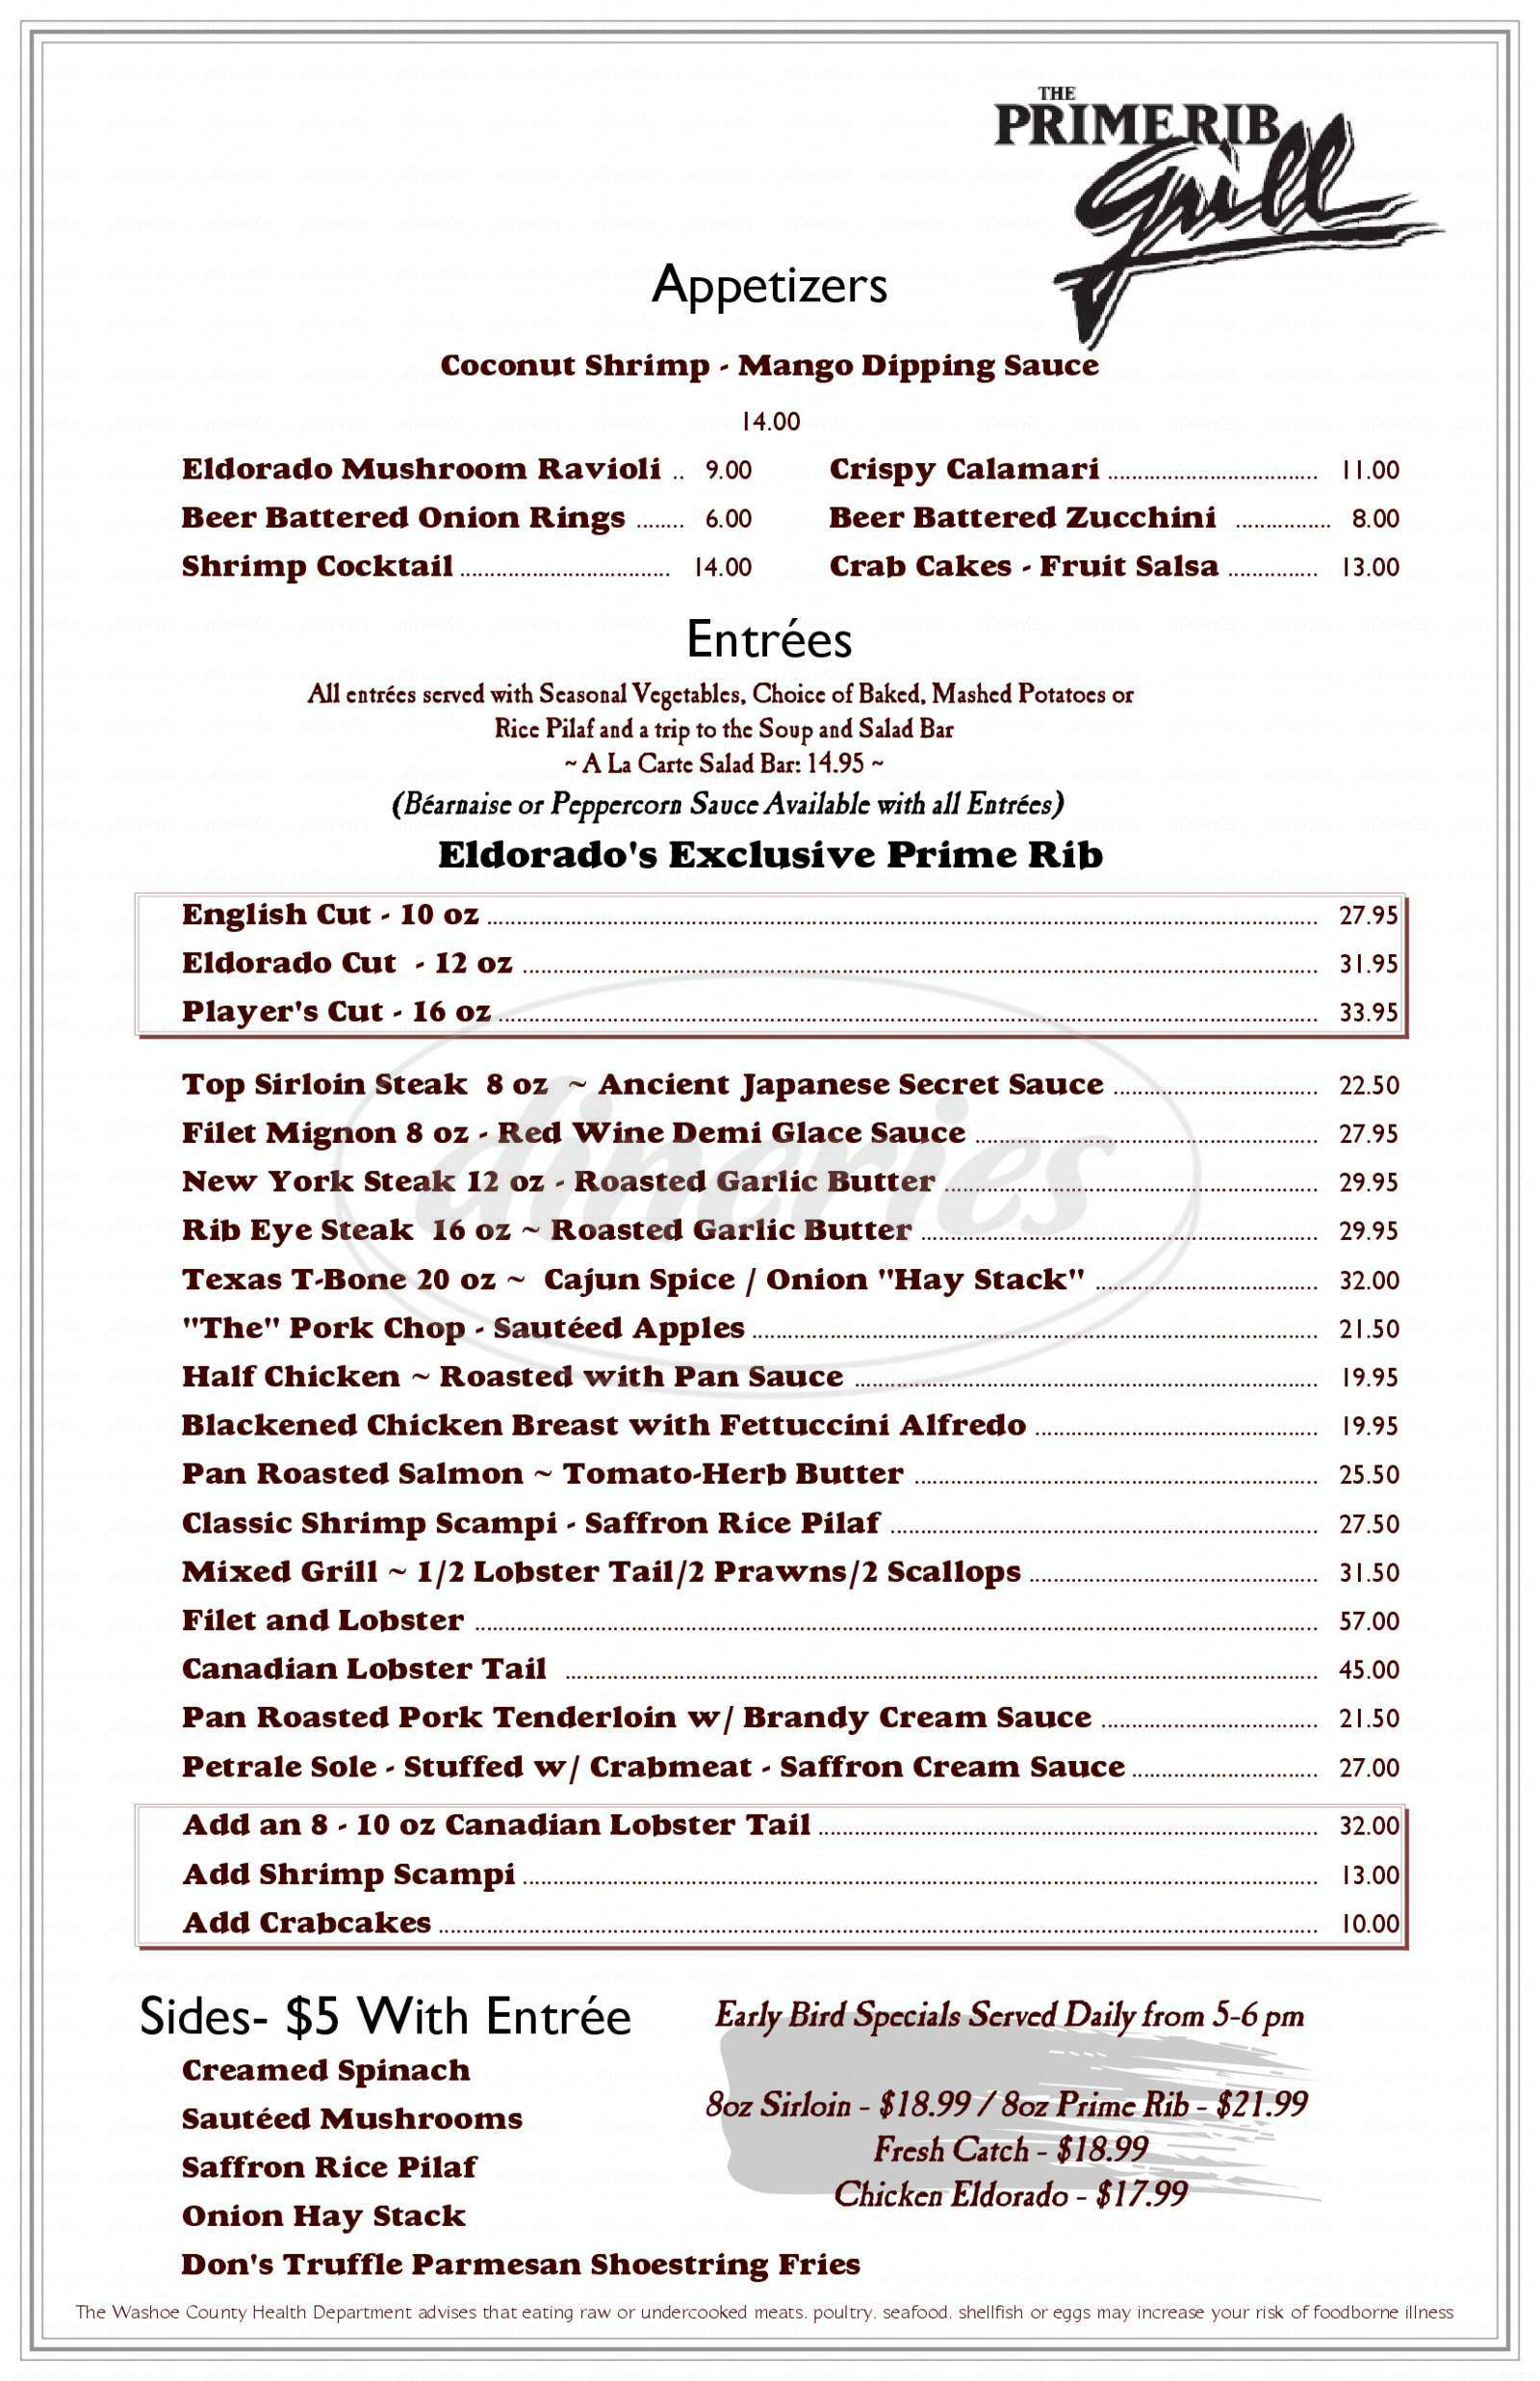 menu for The Prime Rib Grill